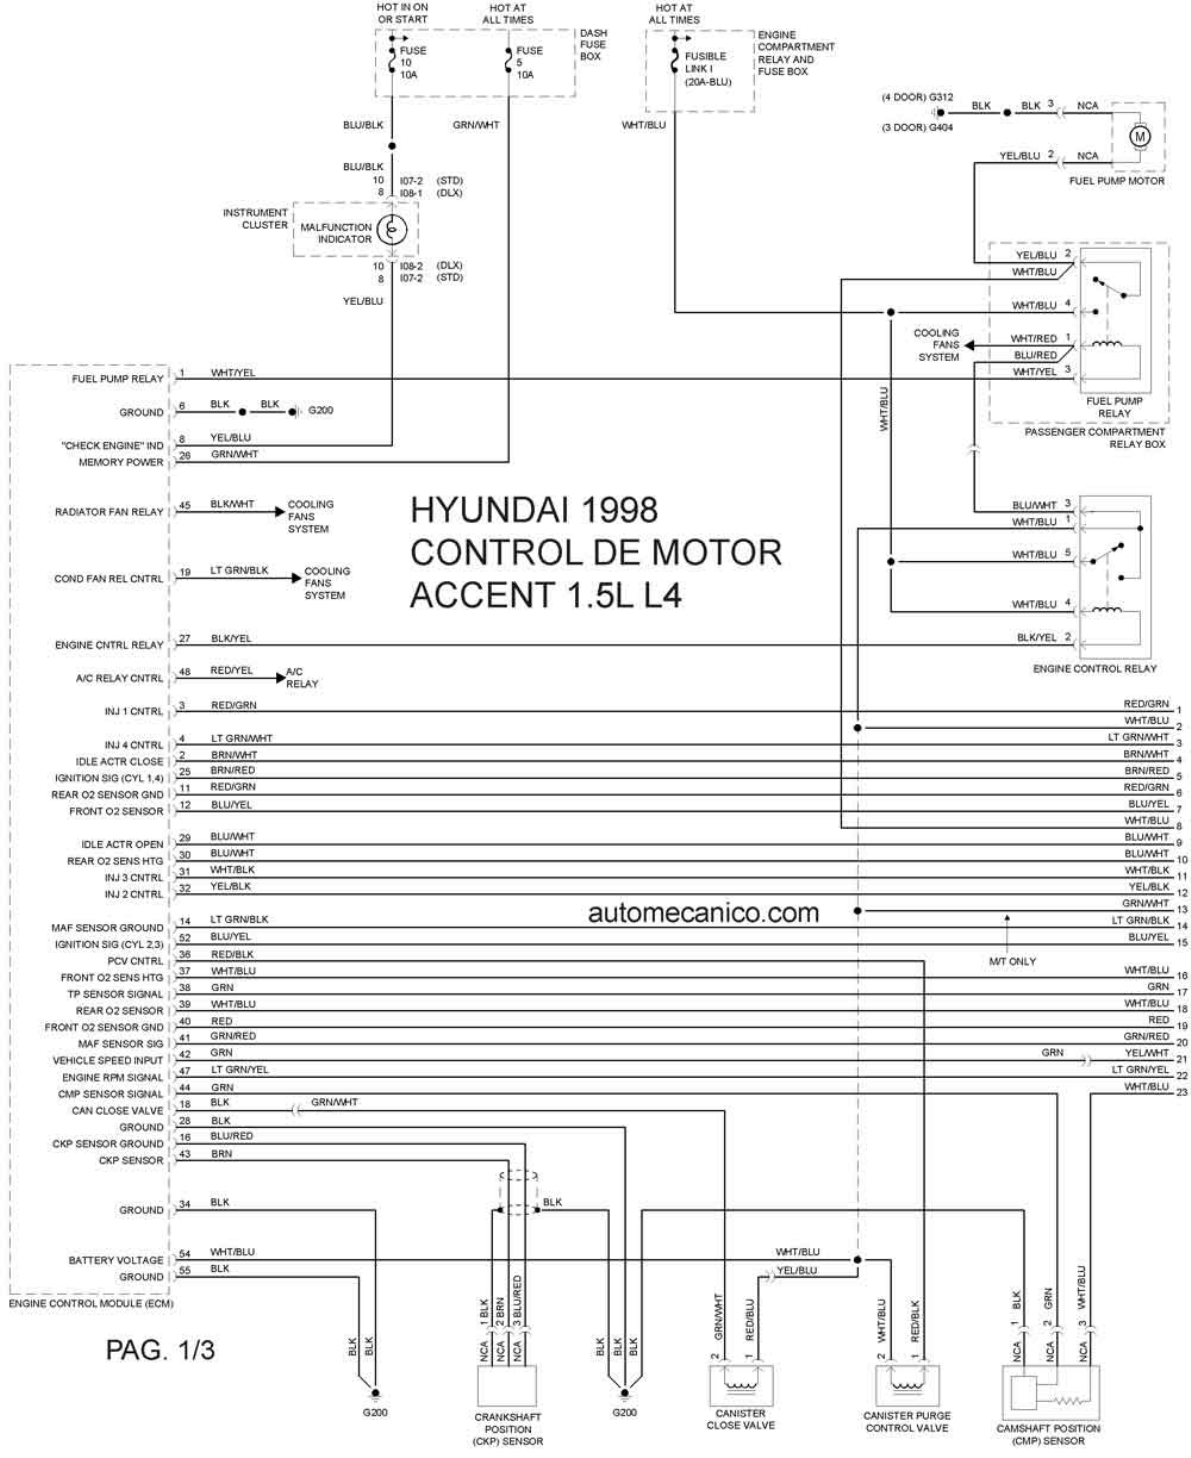 fuse diagram 2007 accent simple wiring diagram mercedes fuse diagram 2004  hyundai accent 1998 misc document